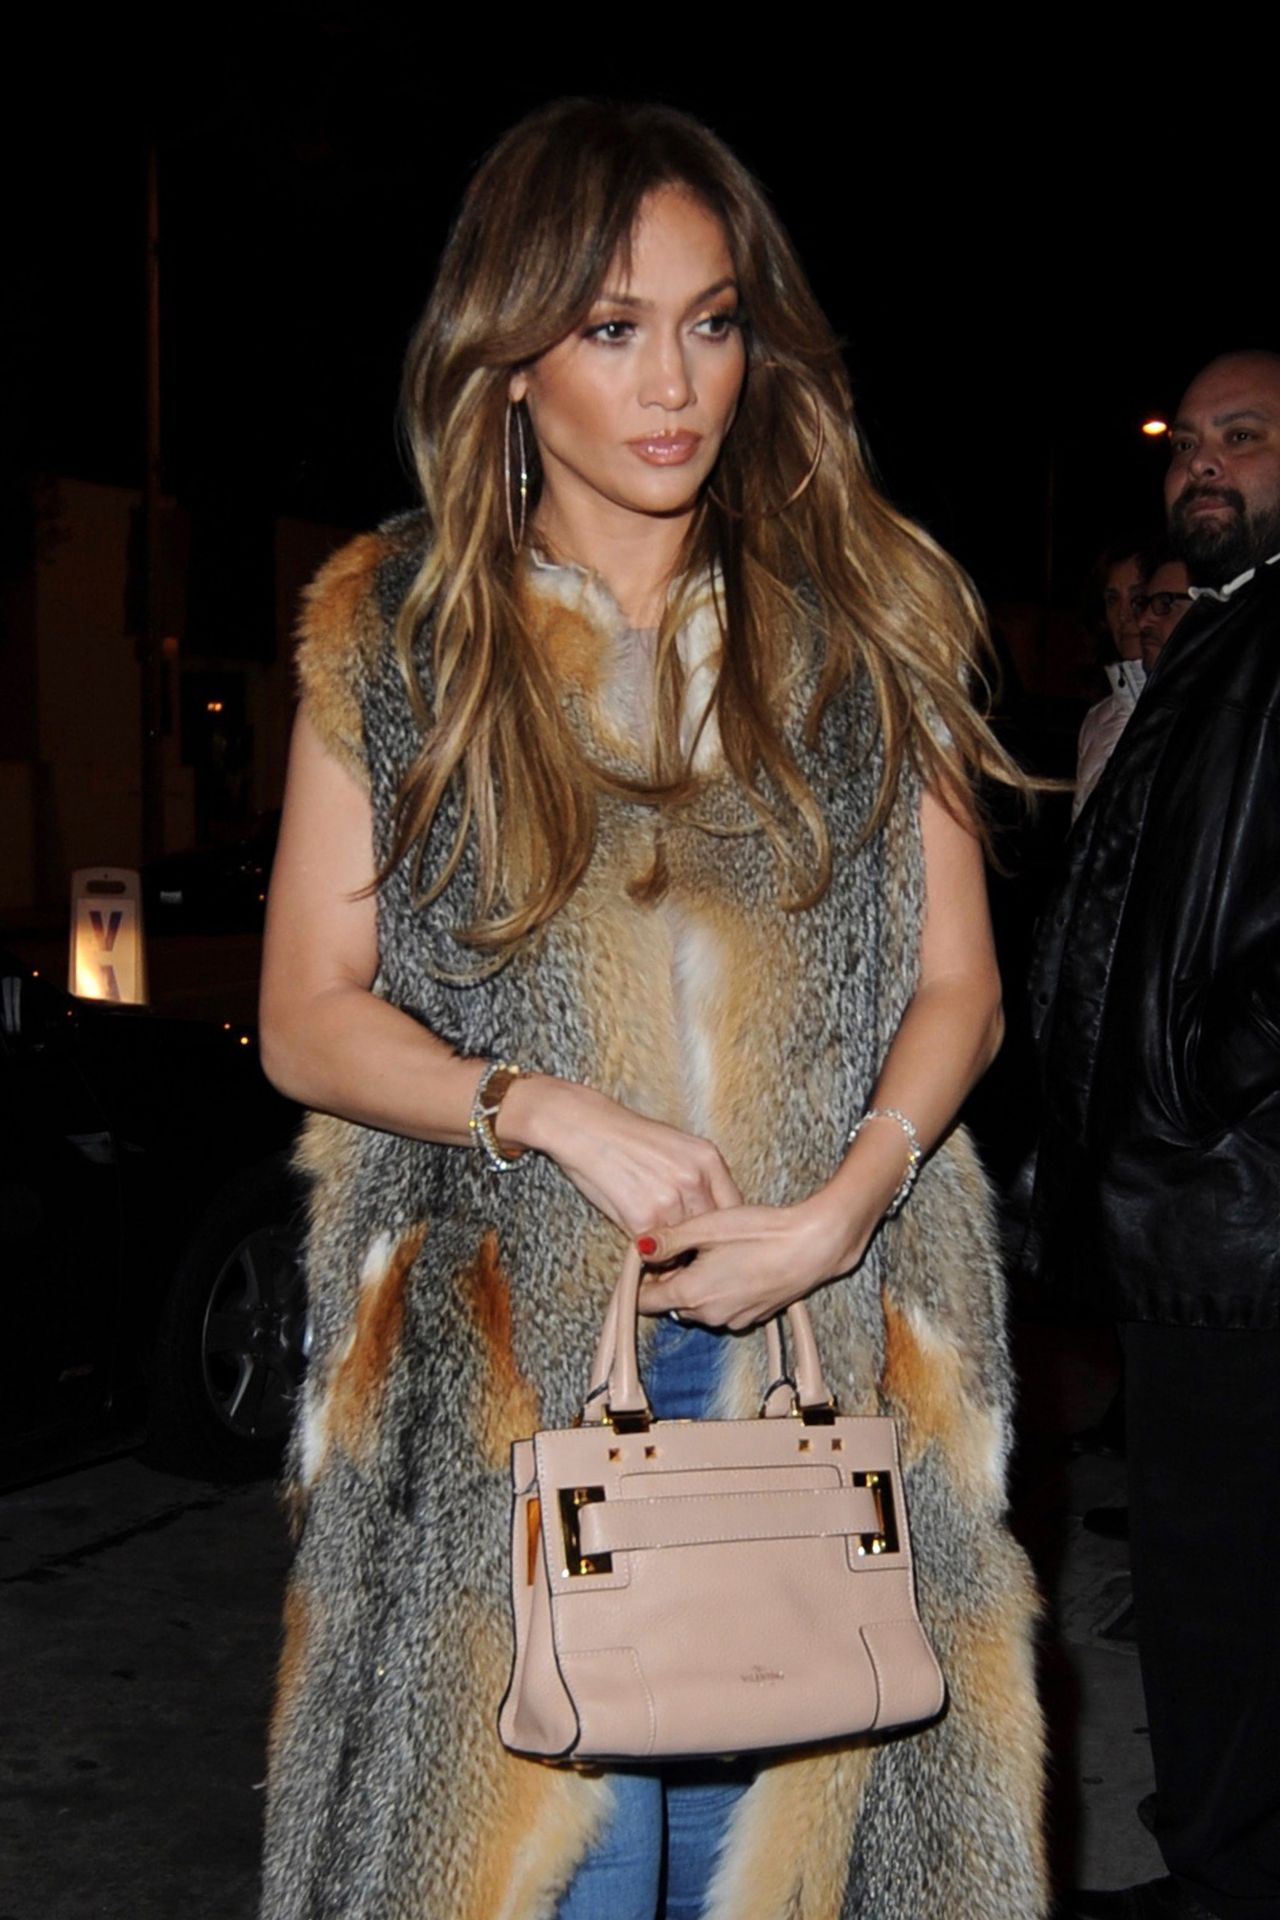 J Lo leaving Catch LA restaurant